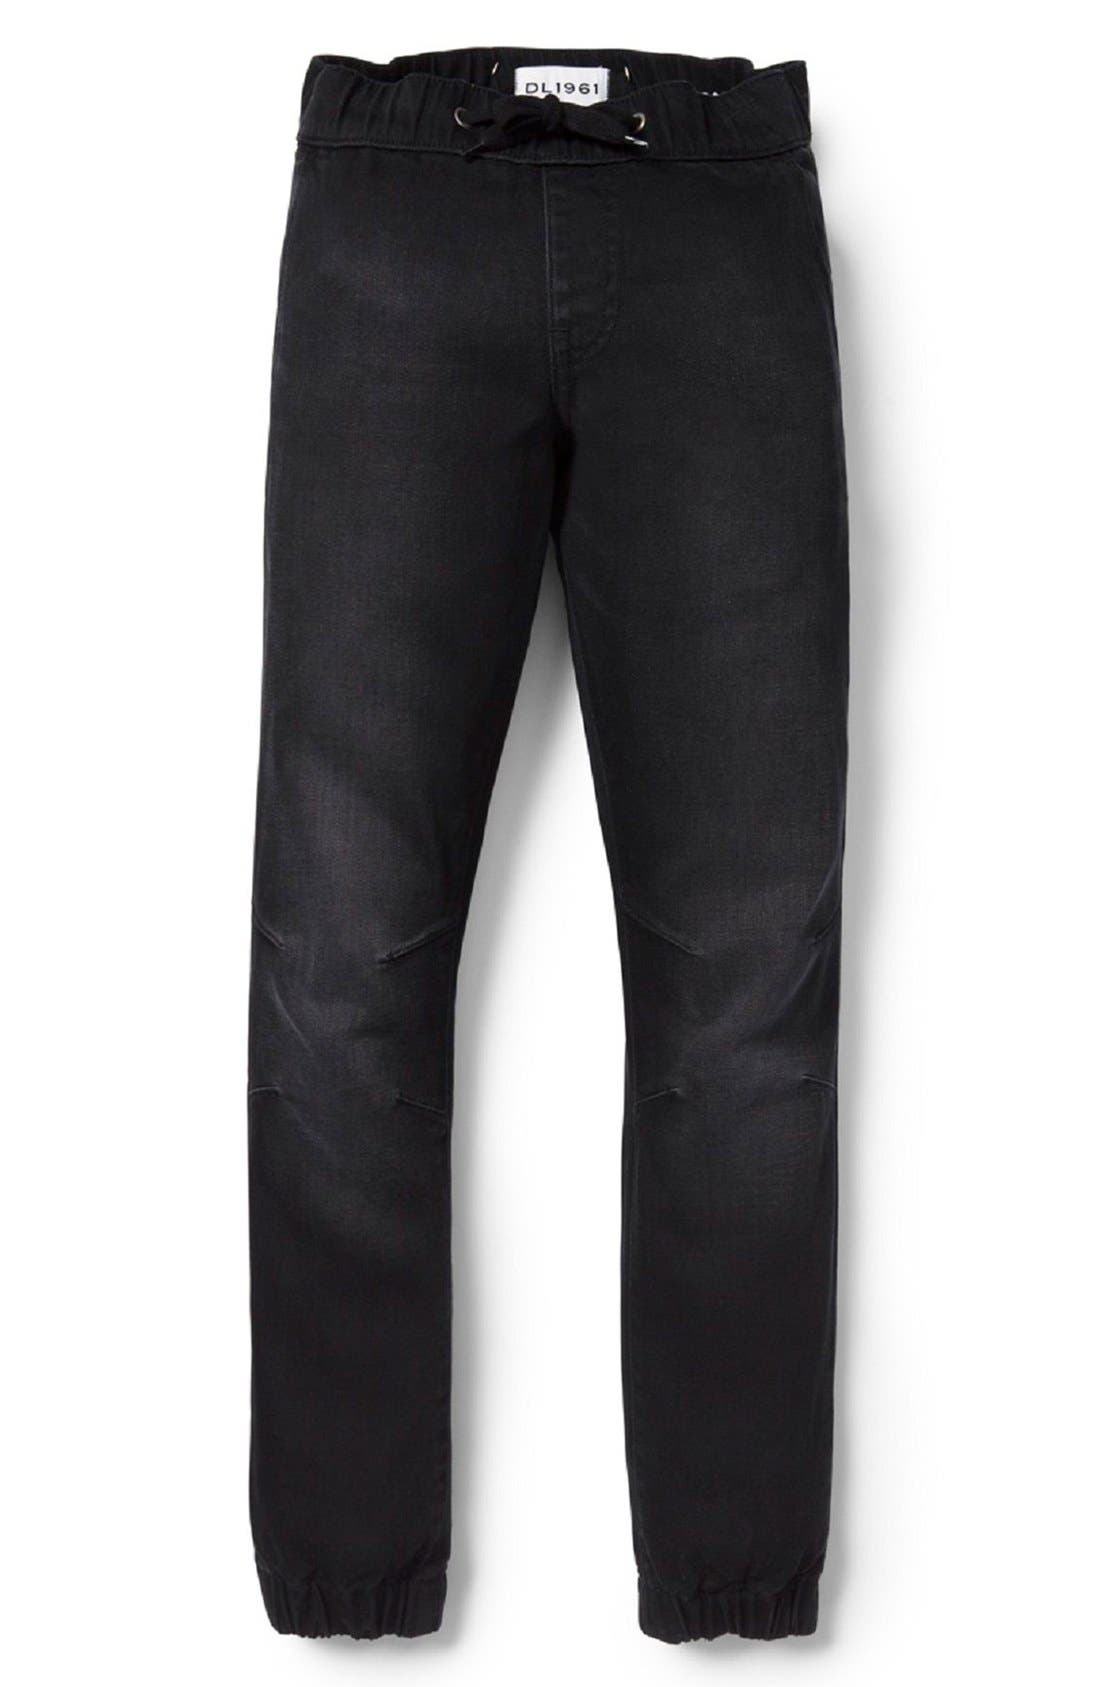 Main Image - DL1961 'Jackson' Jogger Pants (Big Boys)